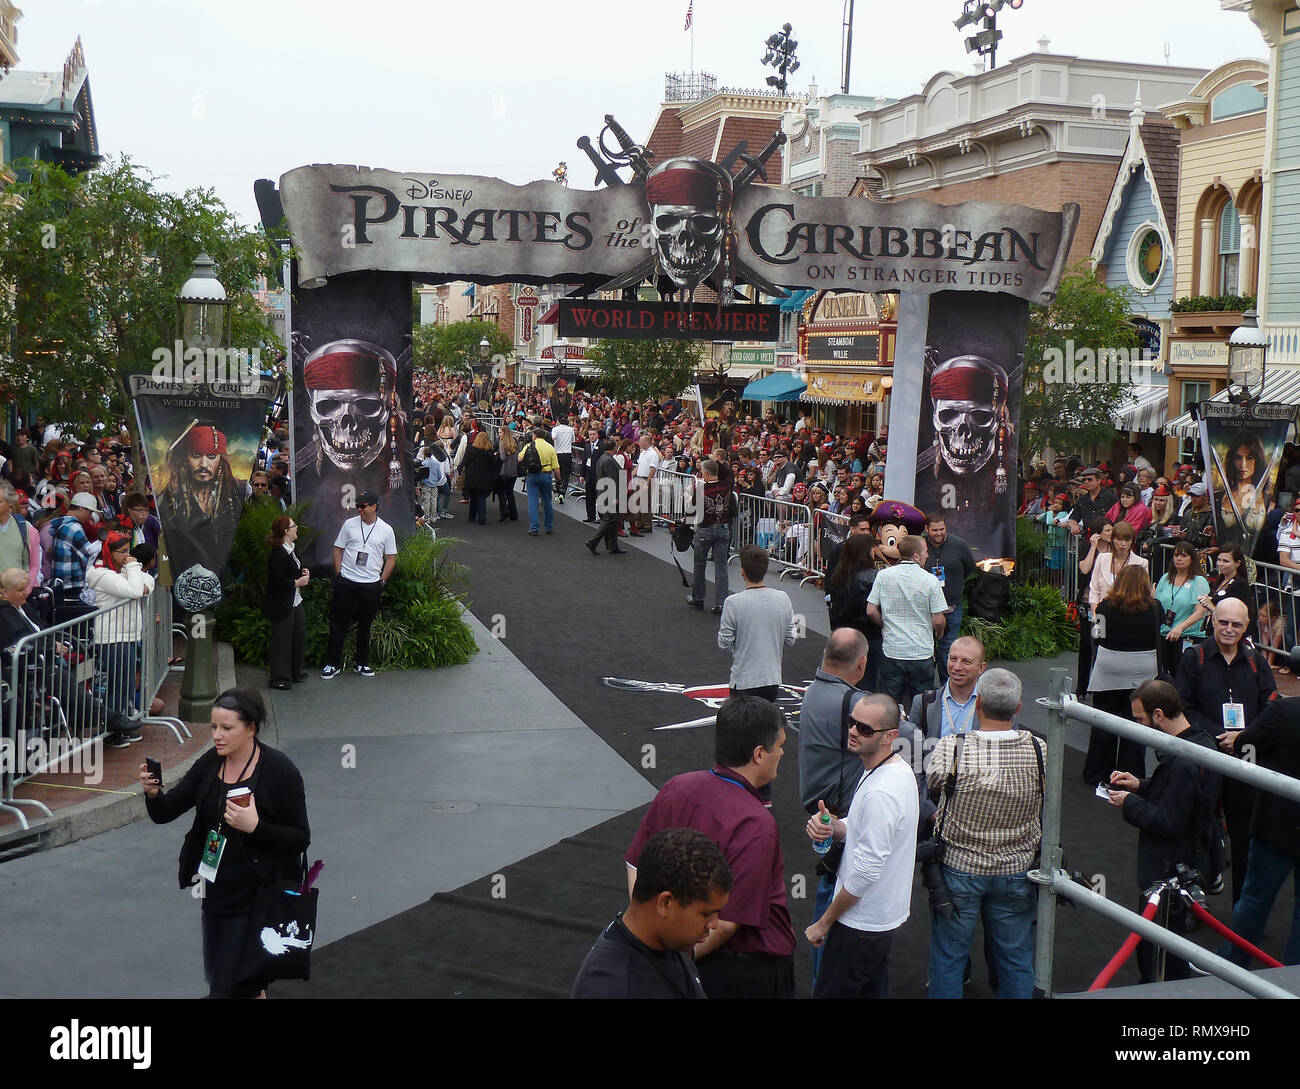 Ambience   at Pirates of the Caribbean-On Stranger Tides Premiere in Disneyland, Anaheim.Ambience _86  Event in Hollywood Life - California, Red Carpet and backstage, movie celebrities, TV celebrities, Music celebrities, Topix, Bestof, Arts Culture and Entertainment, Photography,  inquiry tsuni@Gamma-USA.com , Credit Tsuni / USA,  accessory wear by people on event. shoes, jewelery, ring, earring, bag ambience and others. from 2011 - Stock Image